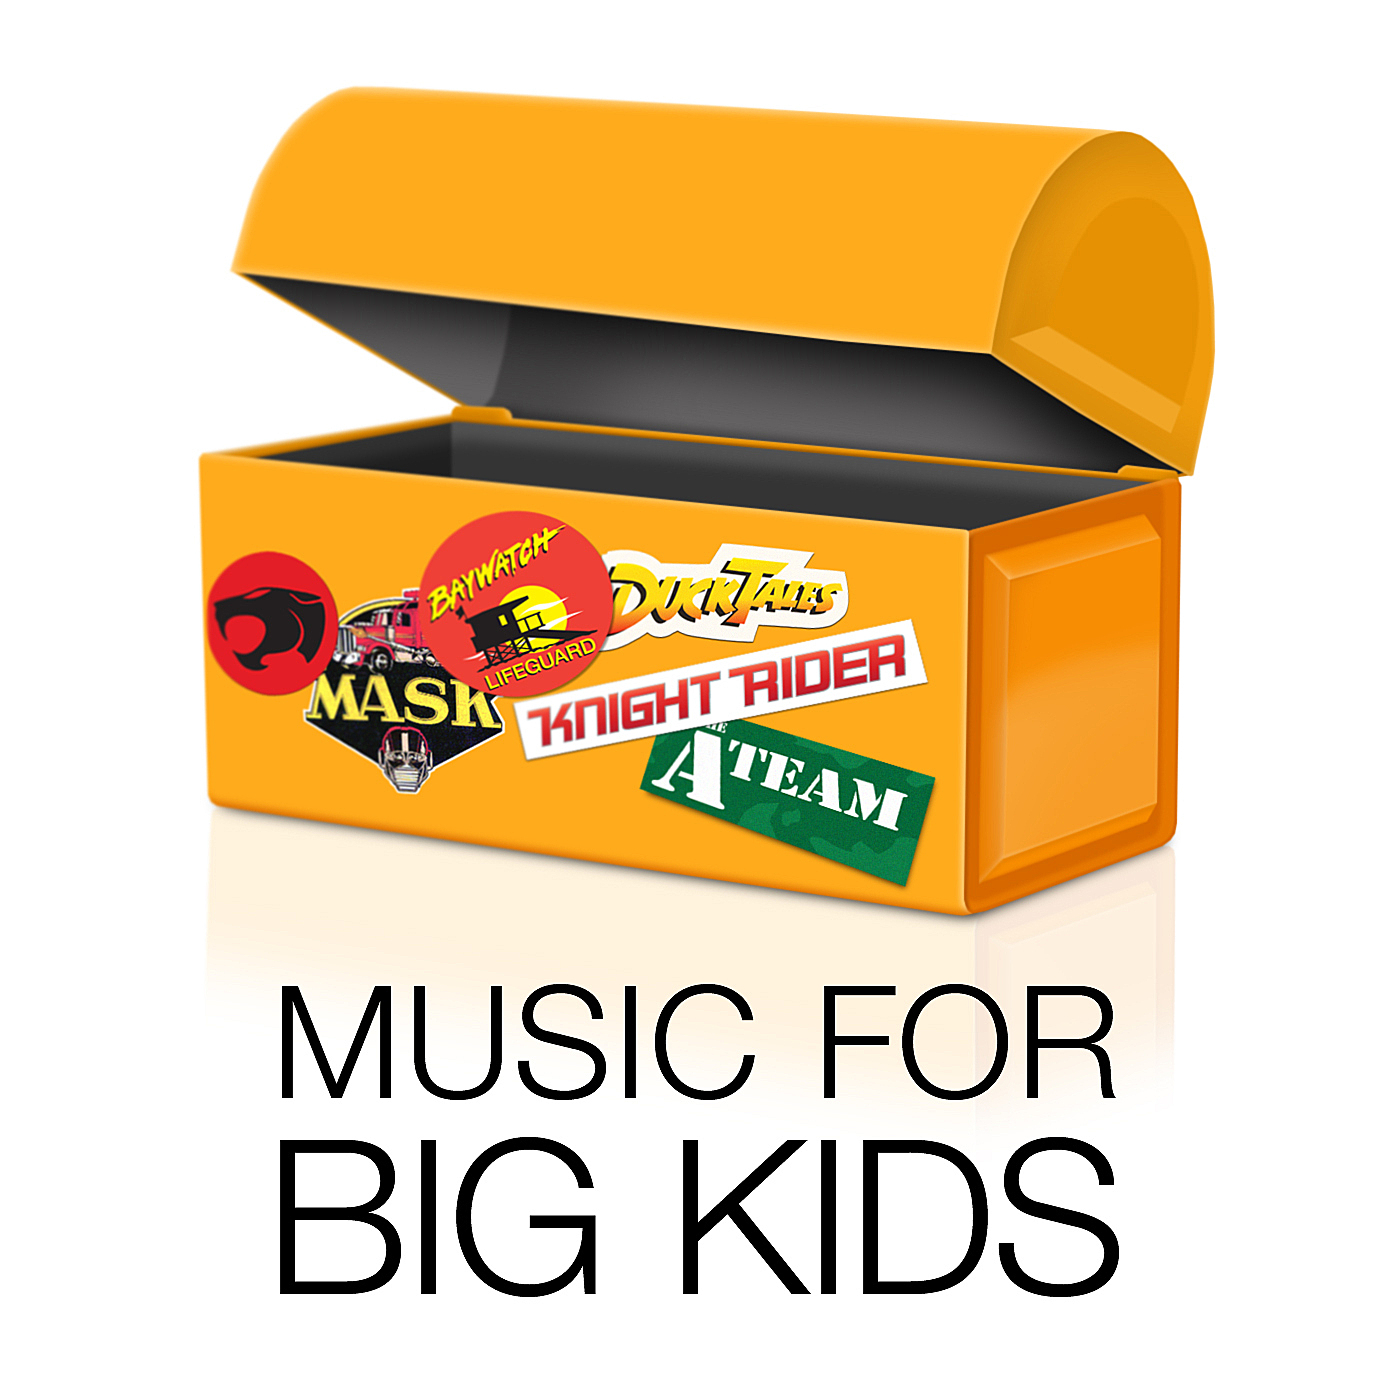 Music For Big Kids